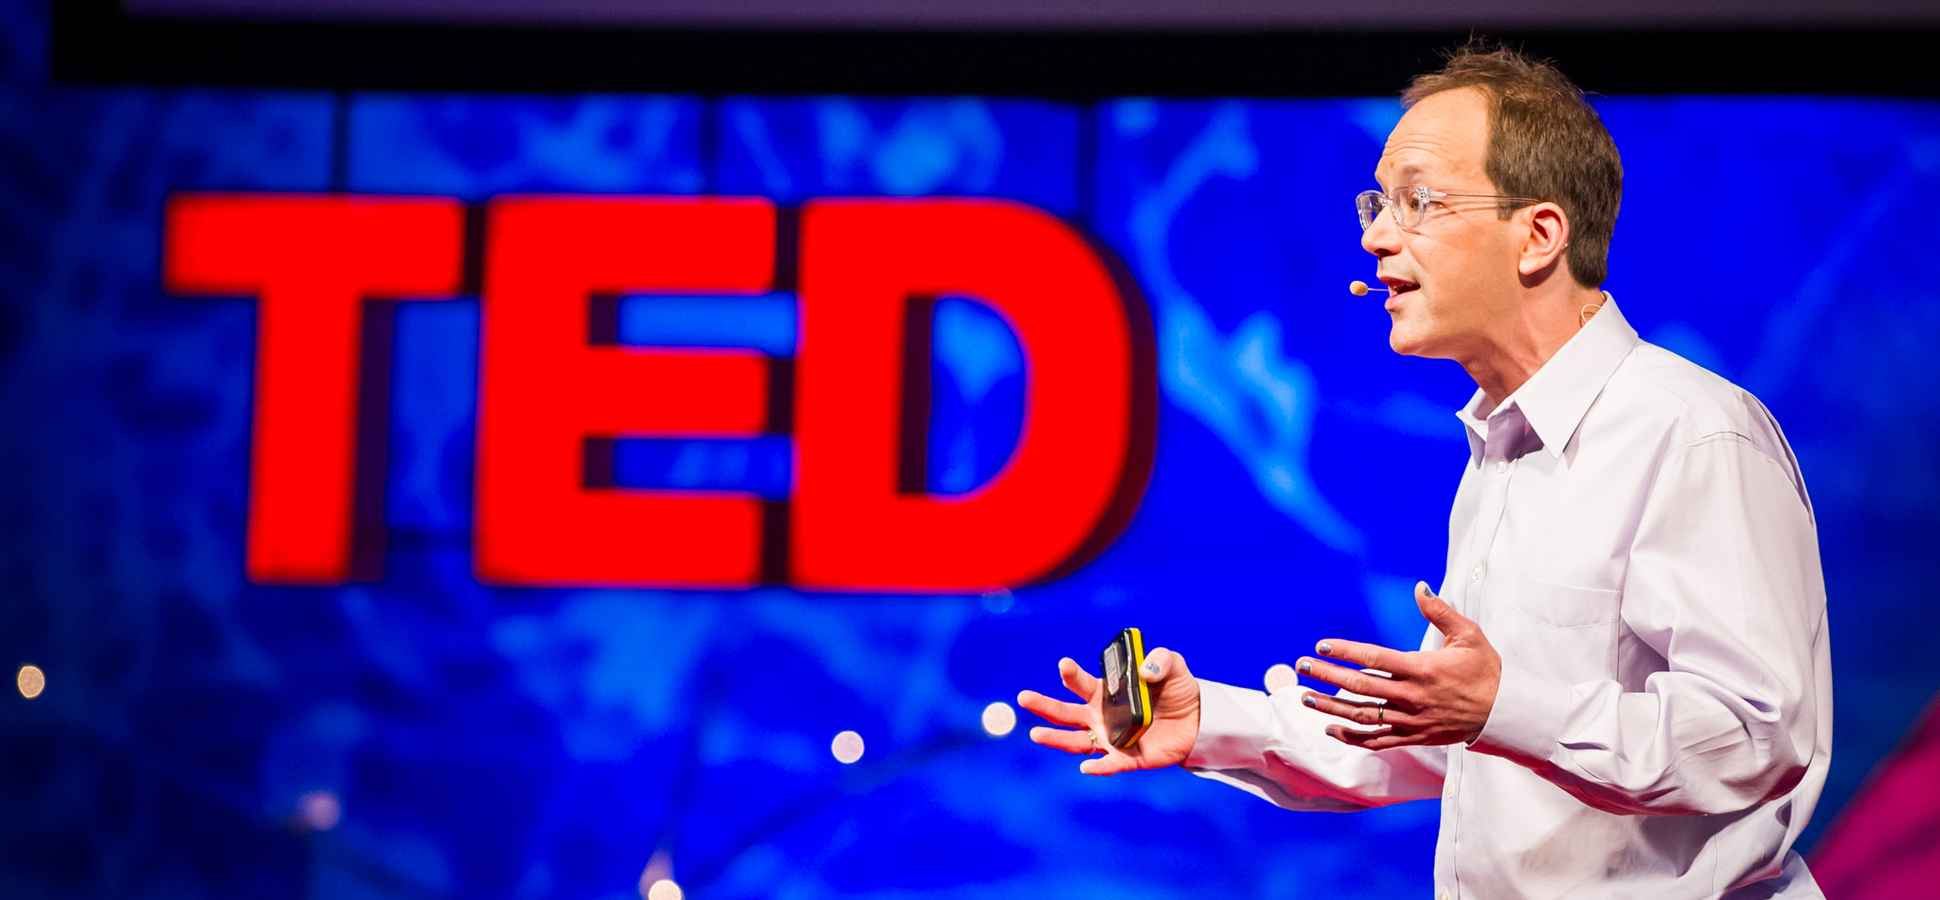 12 TED Talks That Will Make You Sound Smarter